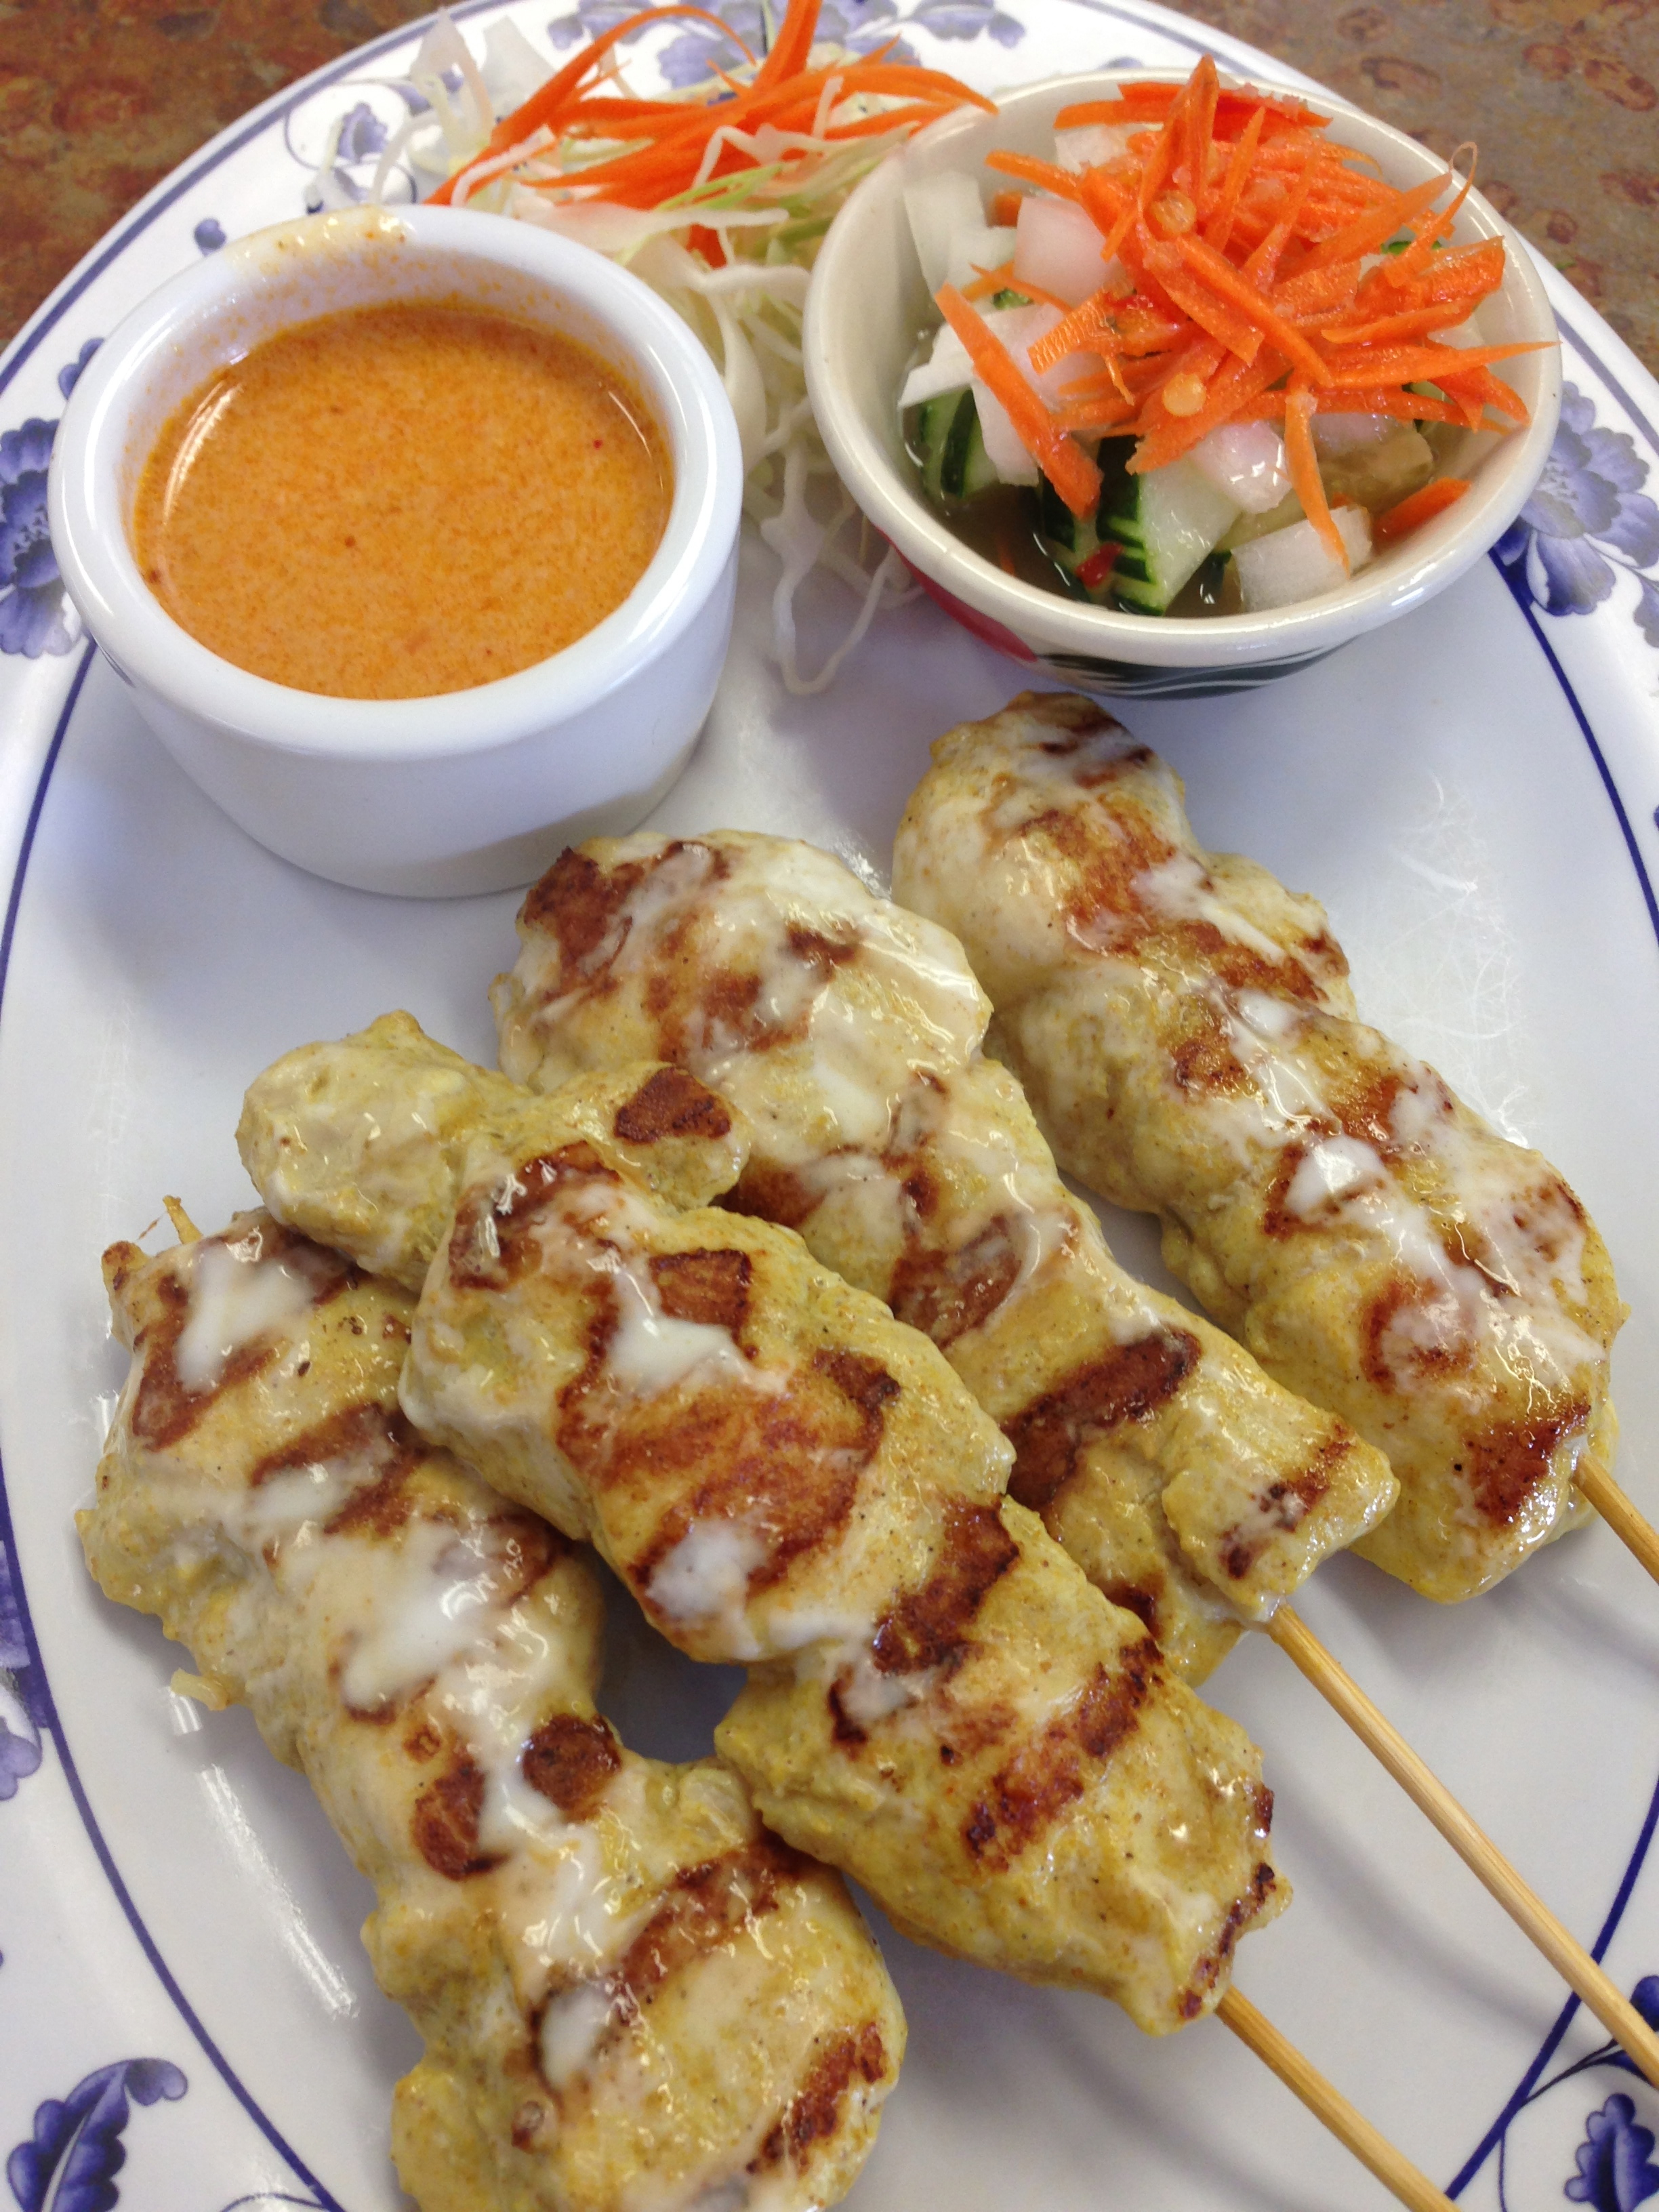 #3 CHICKEN SATAY Image